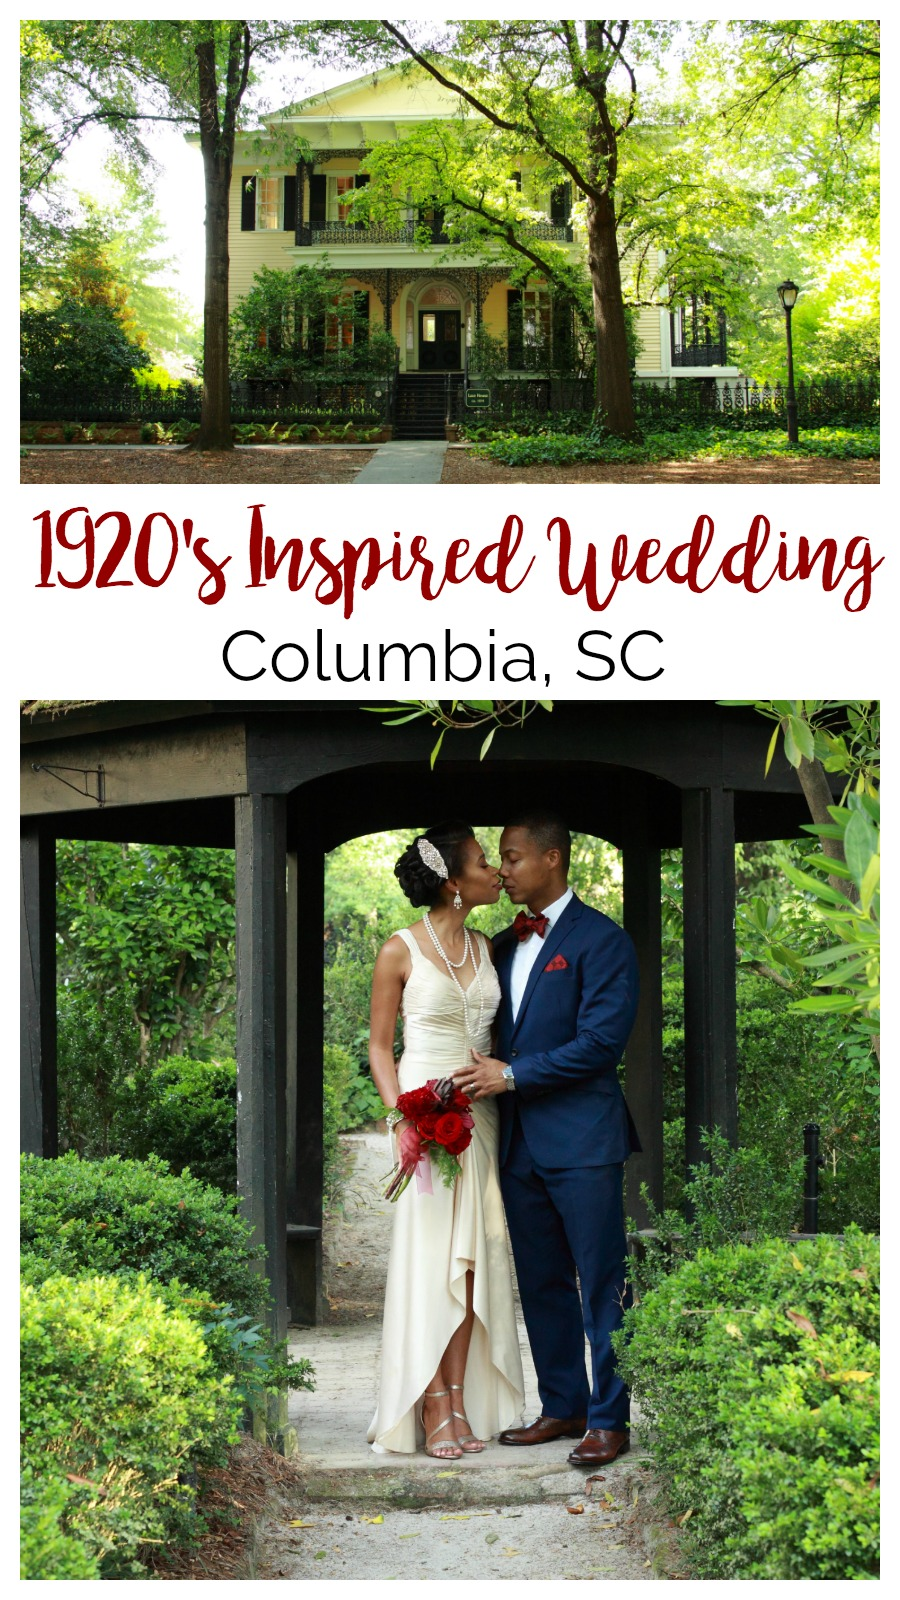 Burgundy and Navy Southern Renaissance Styled Shoot at the Lace House | Palmetto State Weddings | Gadson Photography and Design | Columbia SC wedding | styled shoot inspiration | Gatsby wedding | 1920s wedding inspiration